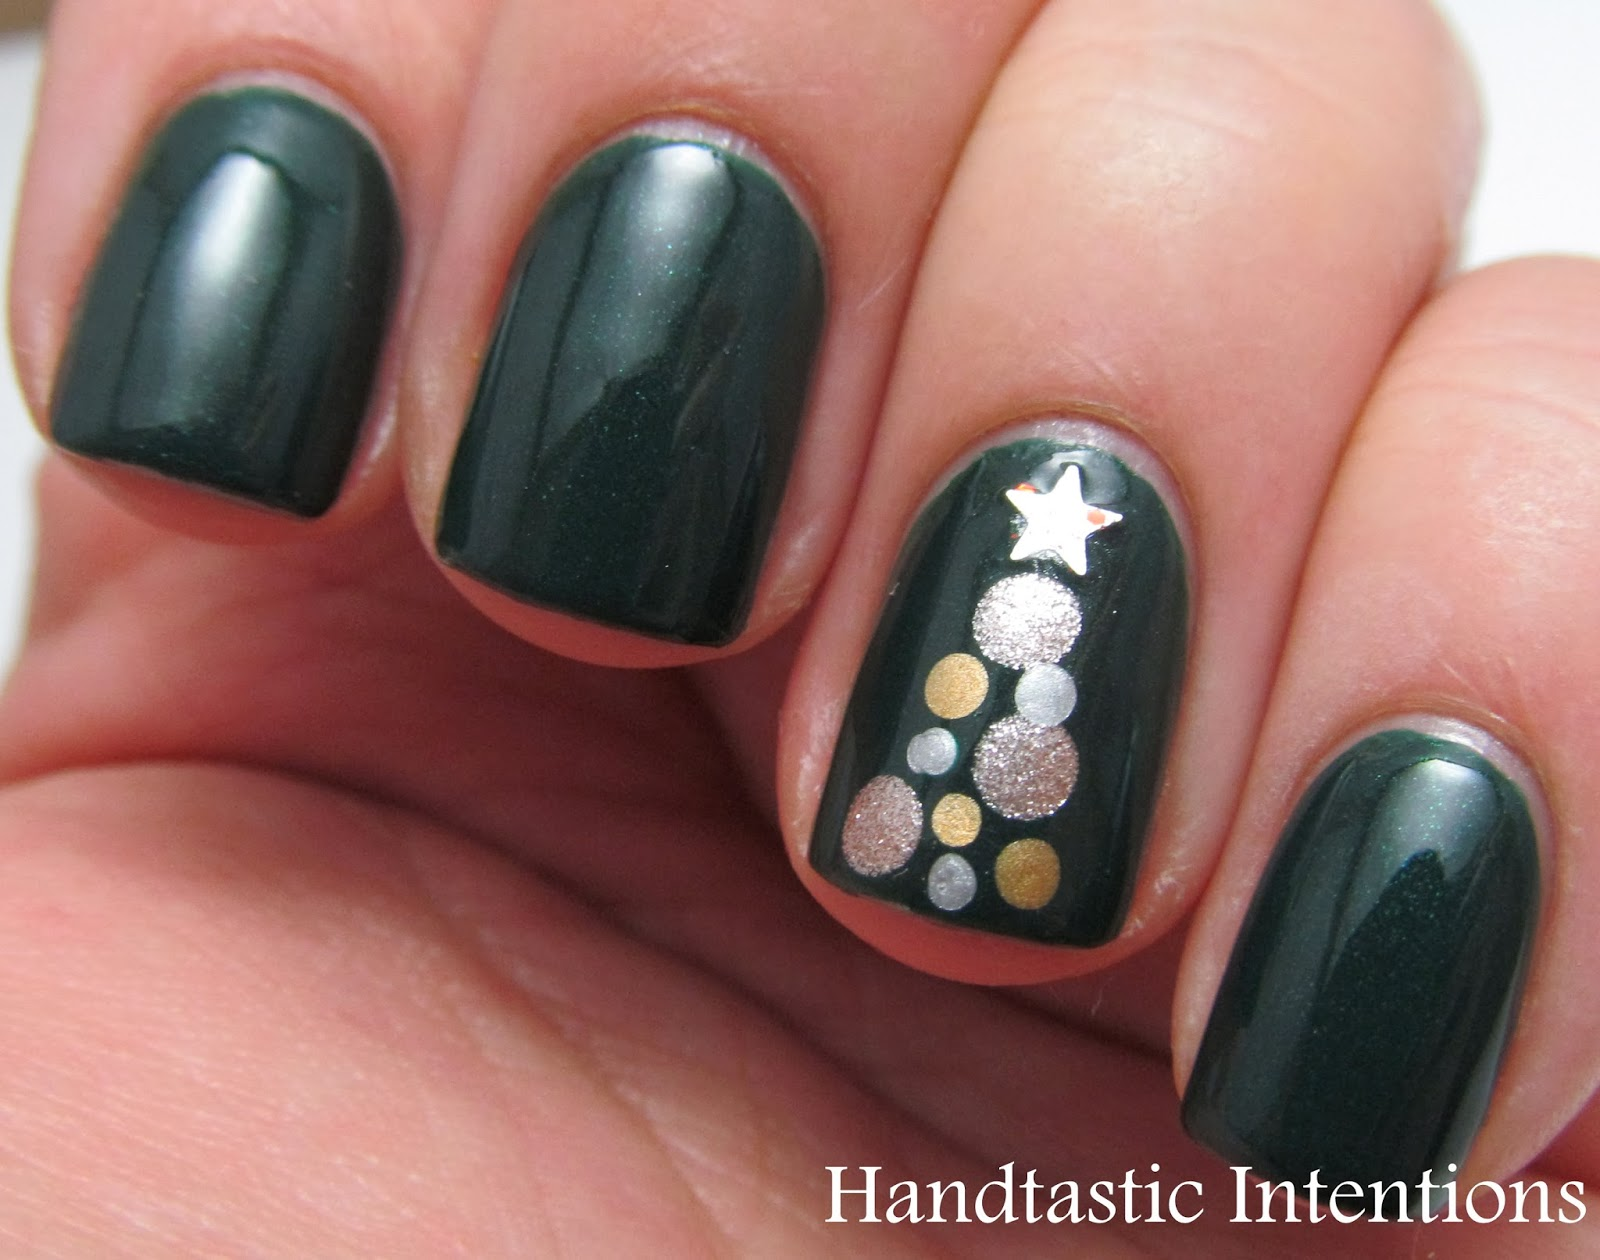 Handtastic Intentions Nail Art Christmas Tree Nails